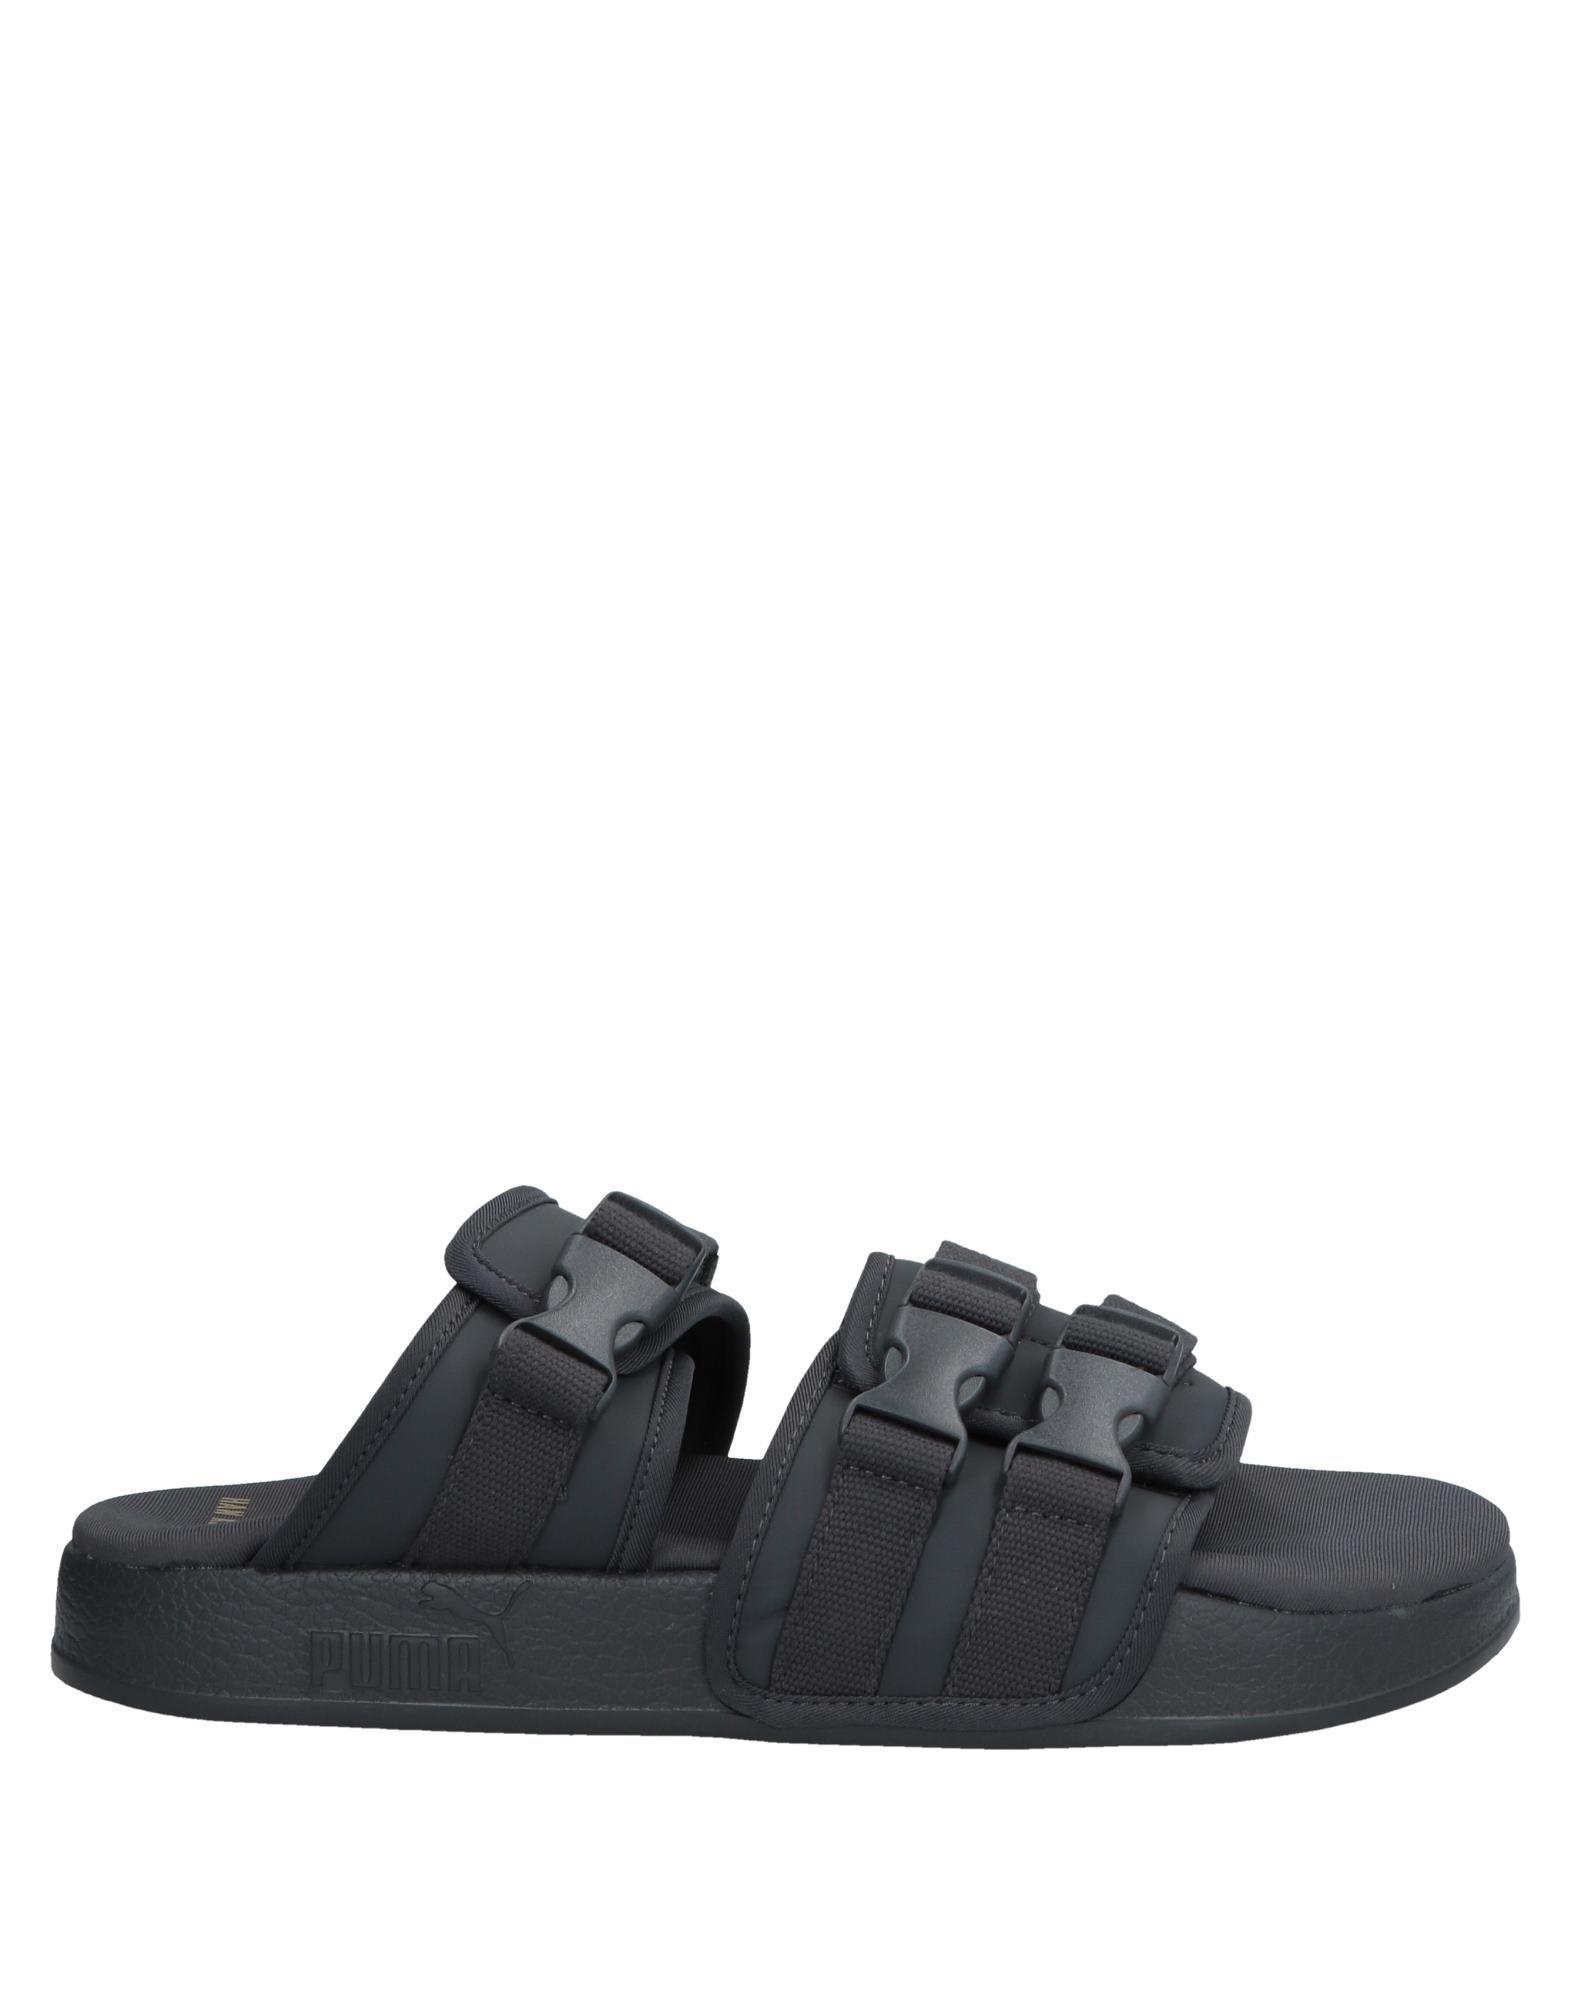 PUMA Rubber Sandals in Lead (Black) for